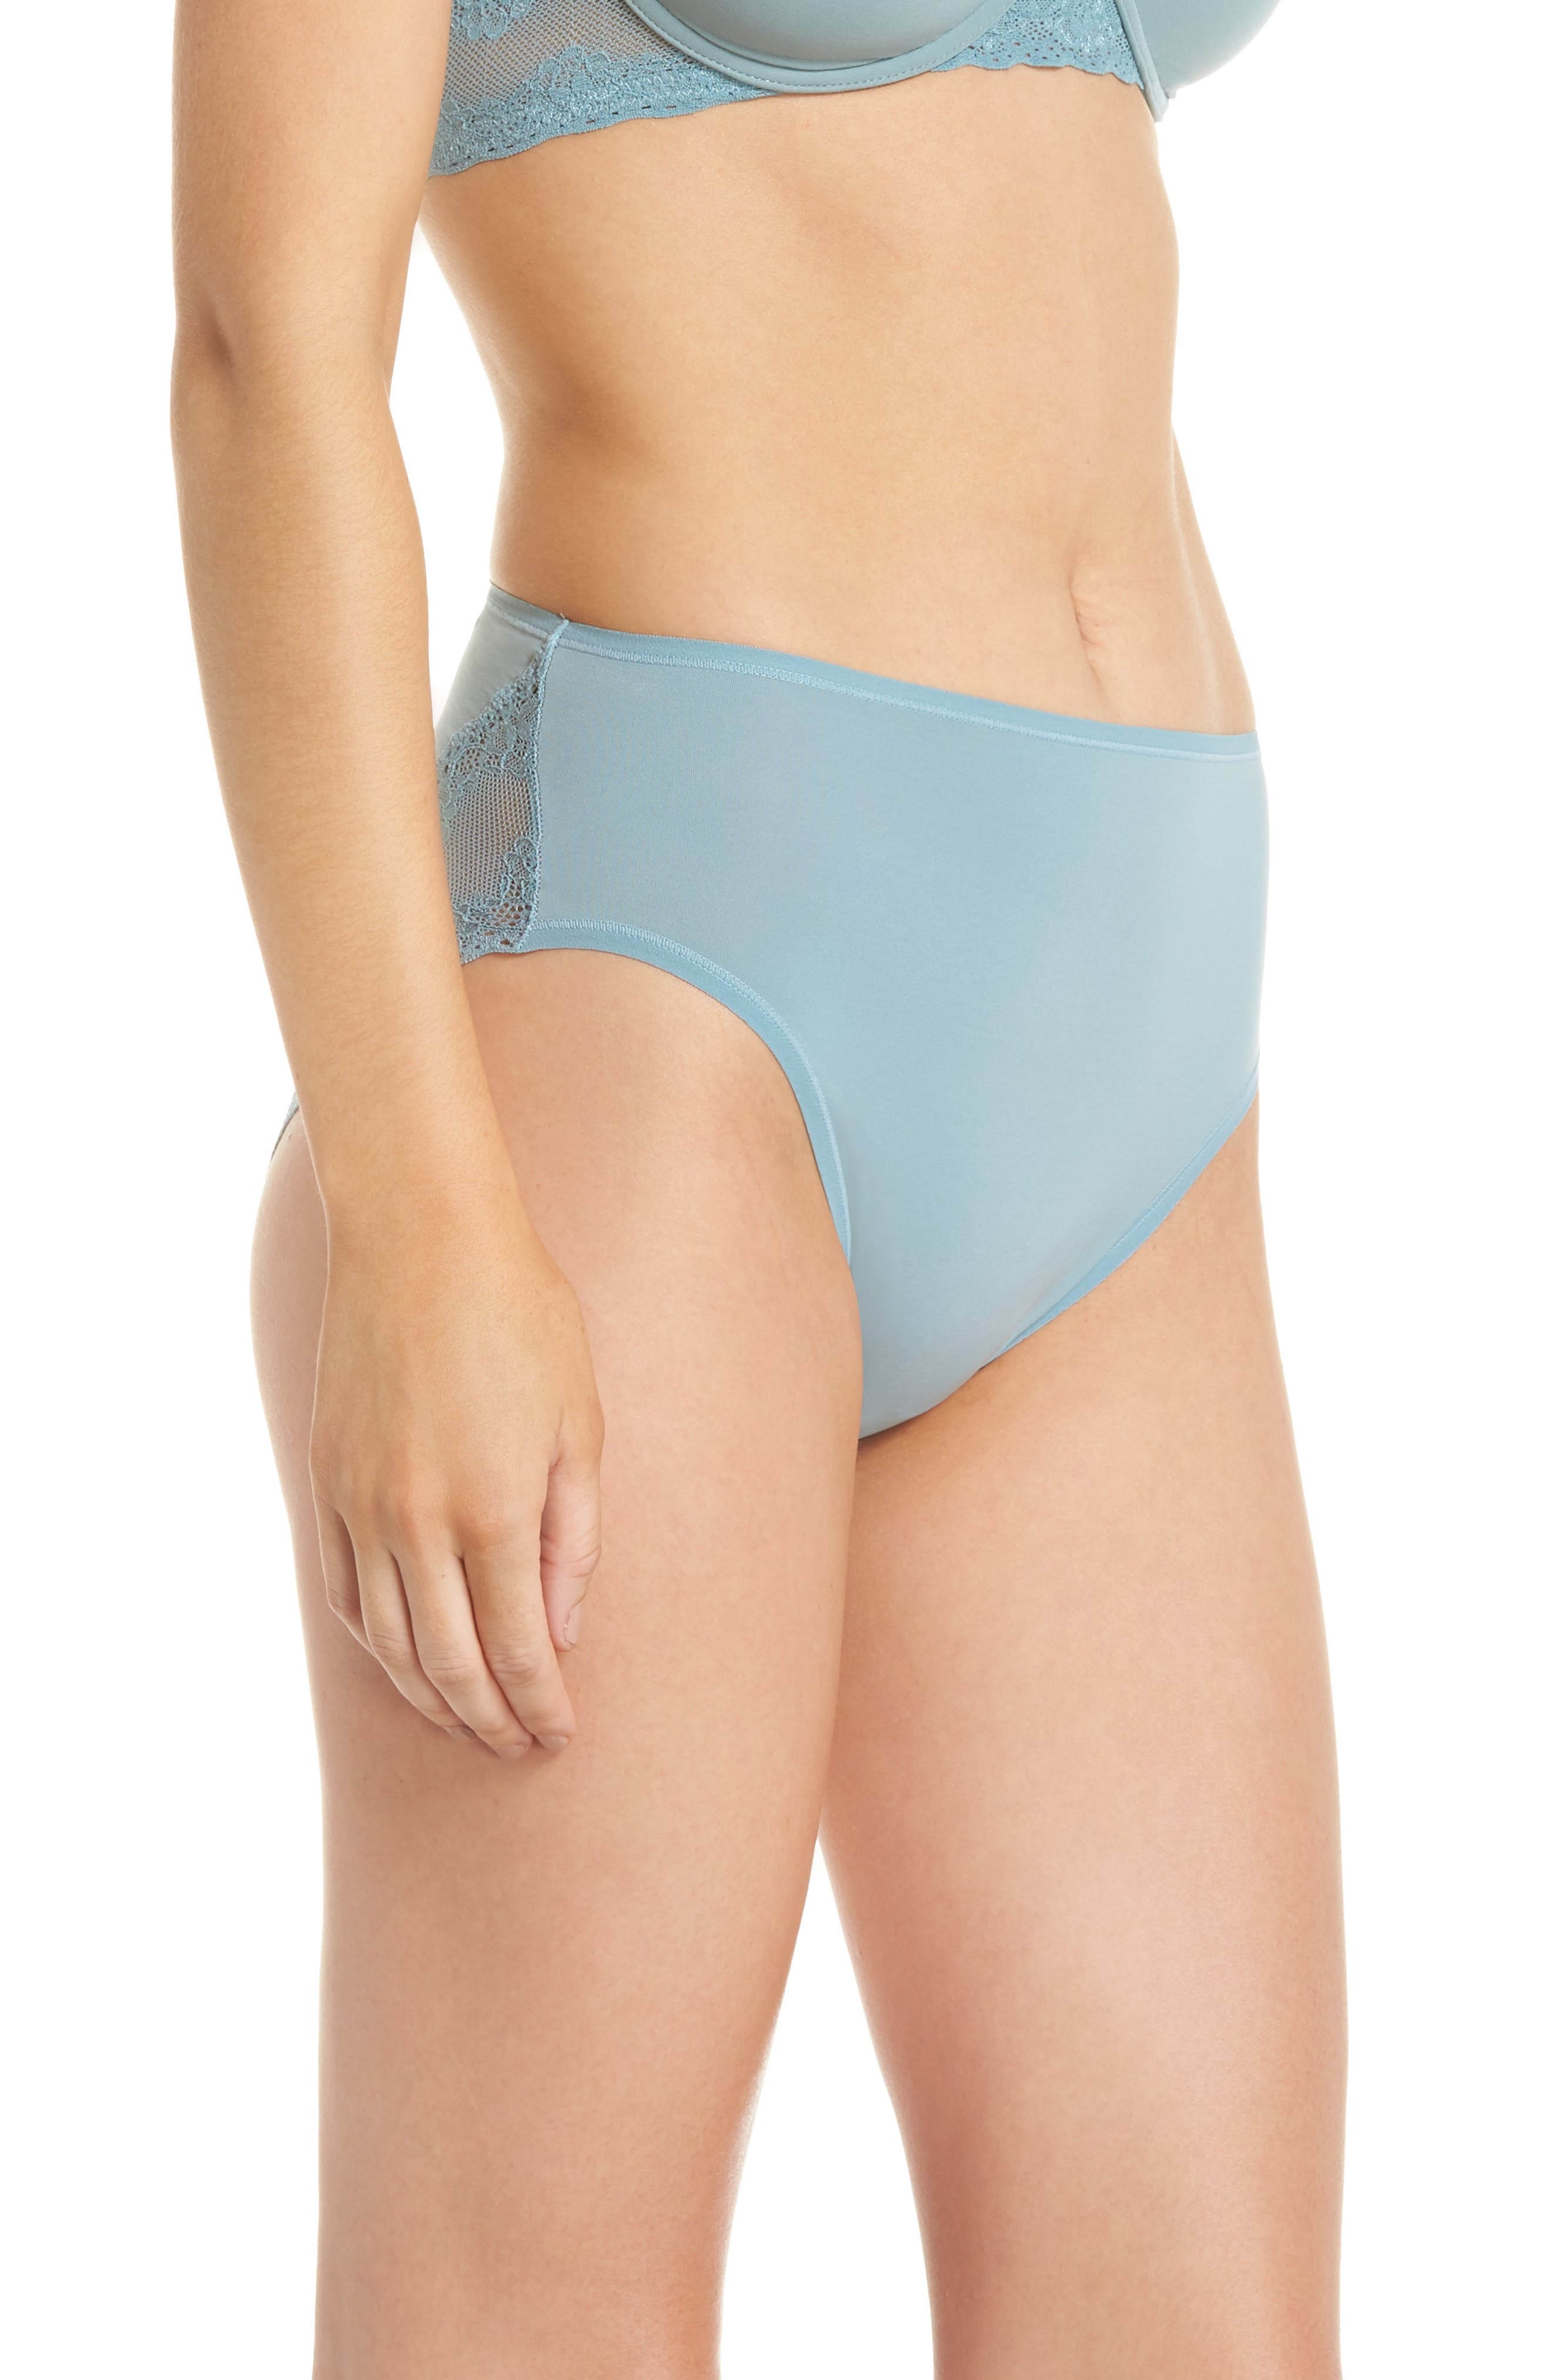 Bliss Perfection French Cut Briefs,                             Alternate thumbnail 3, color,                             SMOKE BLUE